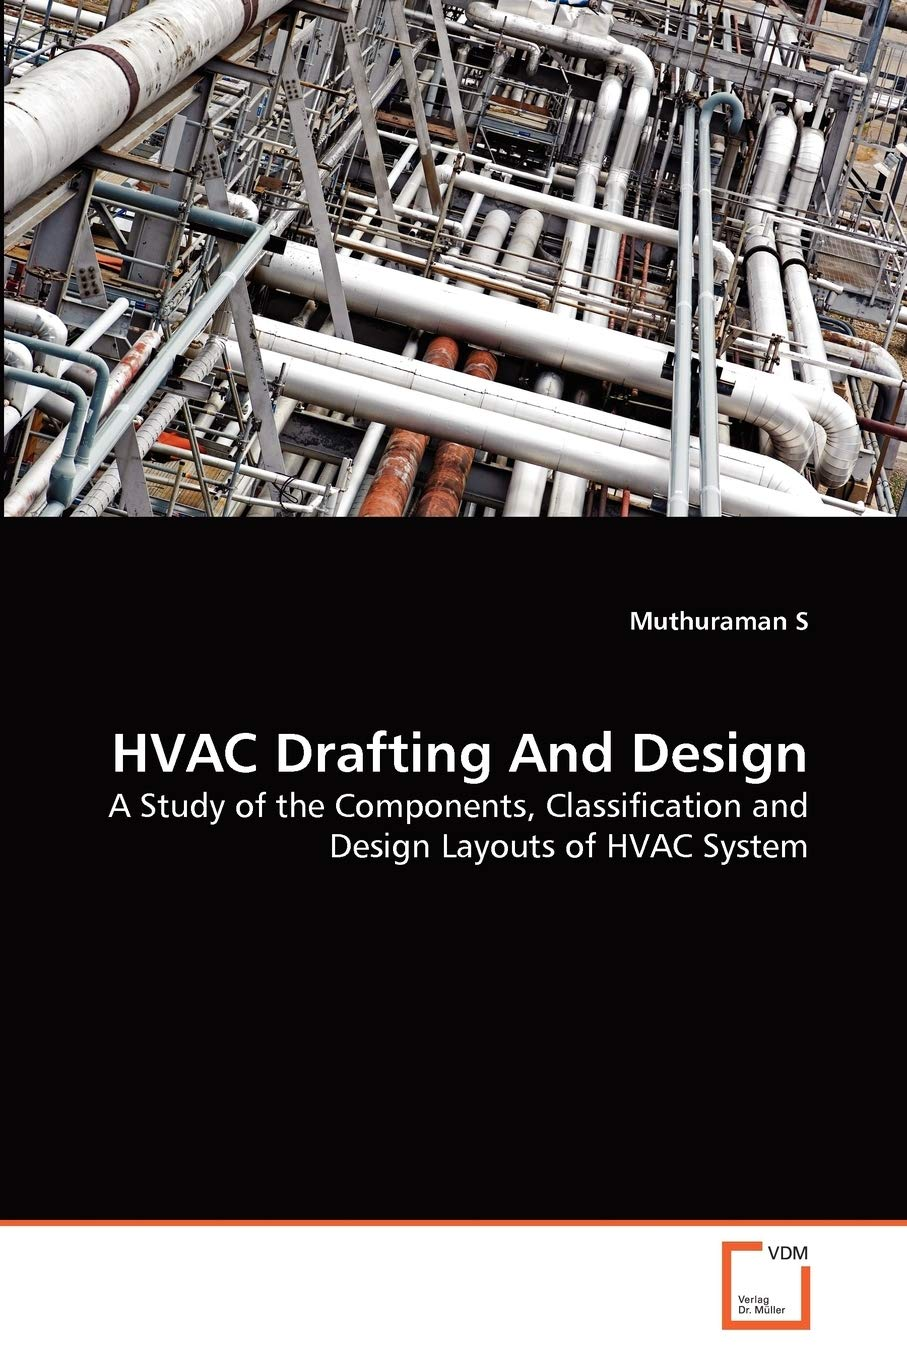 HVAC Drafting And Design: A Study of the Components, Classification and  Design Layouts of HVAC System: S, Muthuraman: 9783639363531: Amazon.com:  Books | Hvac Drawing Book |  | Amazon.com